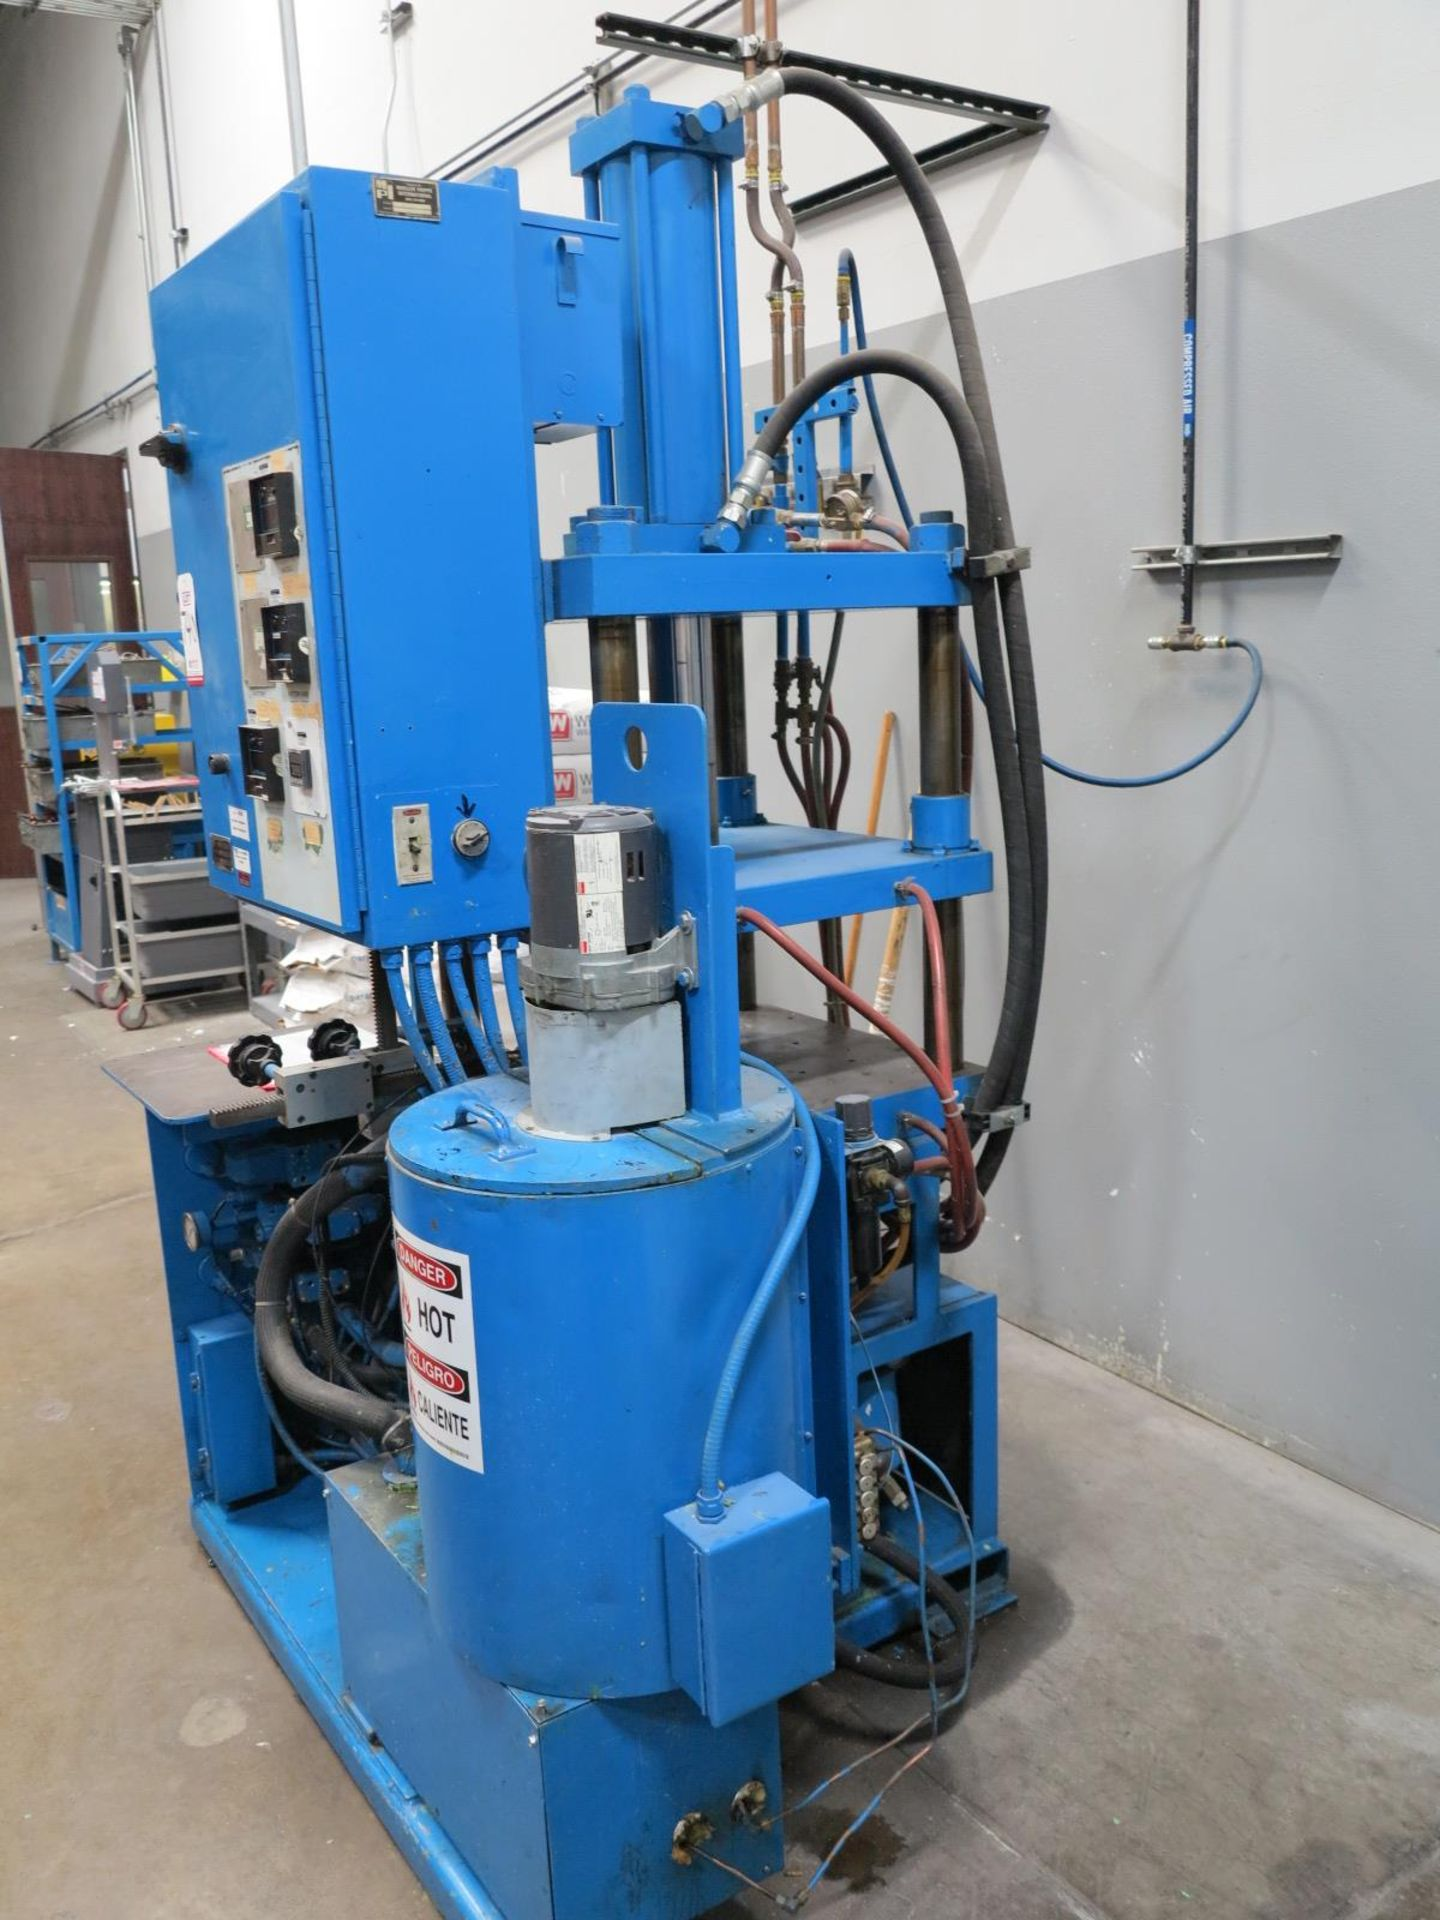 Lot 740 - MPI SYSTEMS WAX INJECTOR, MODEL 34-34-18, S/N 52